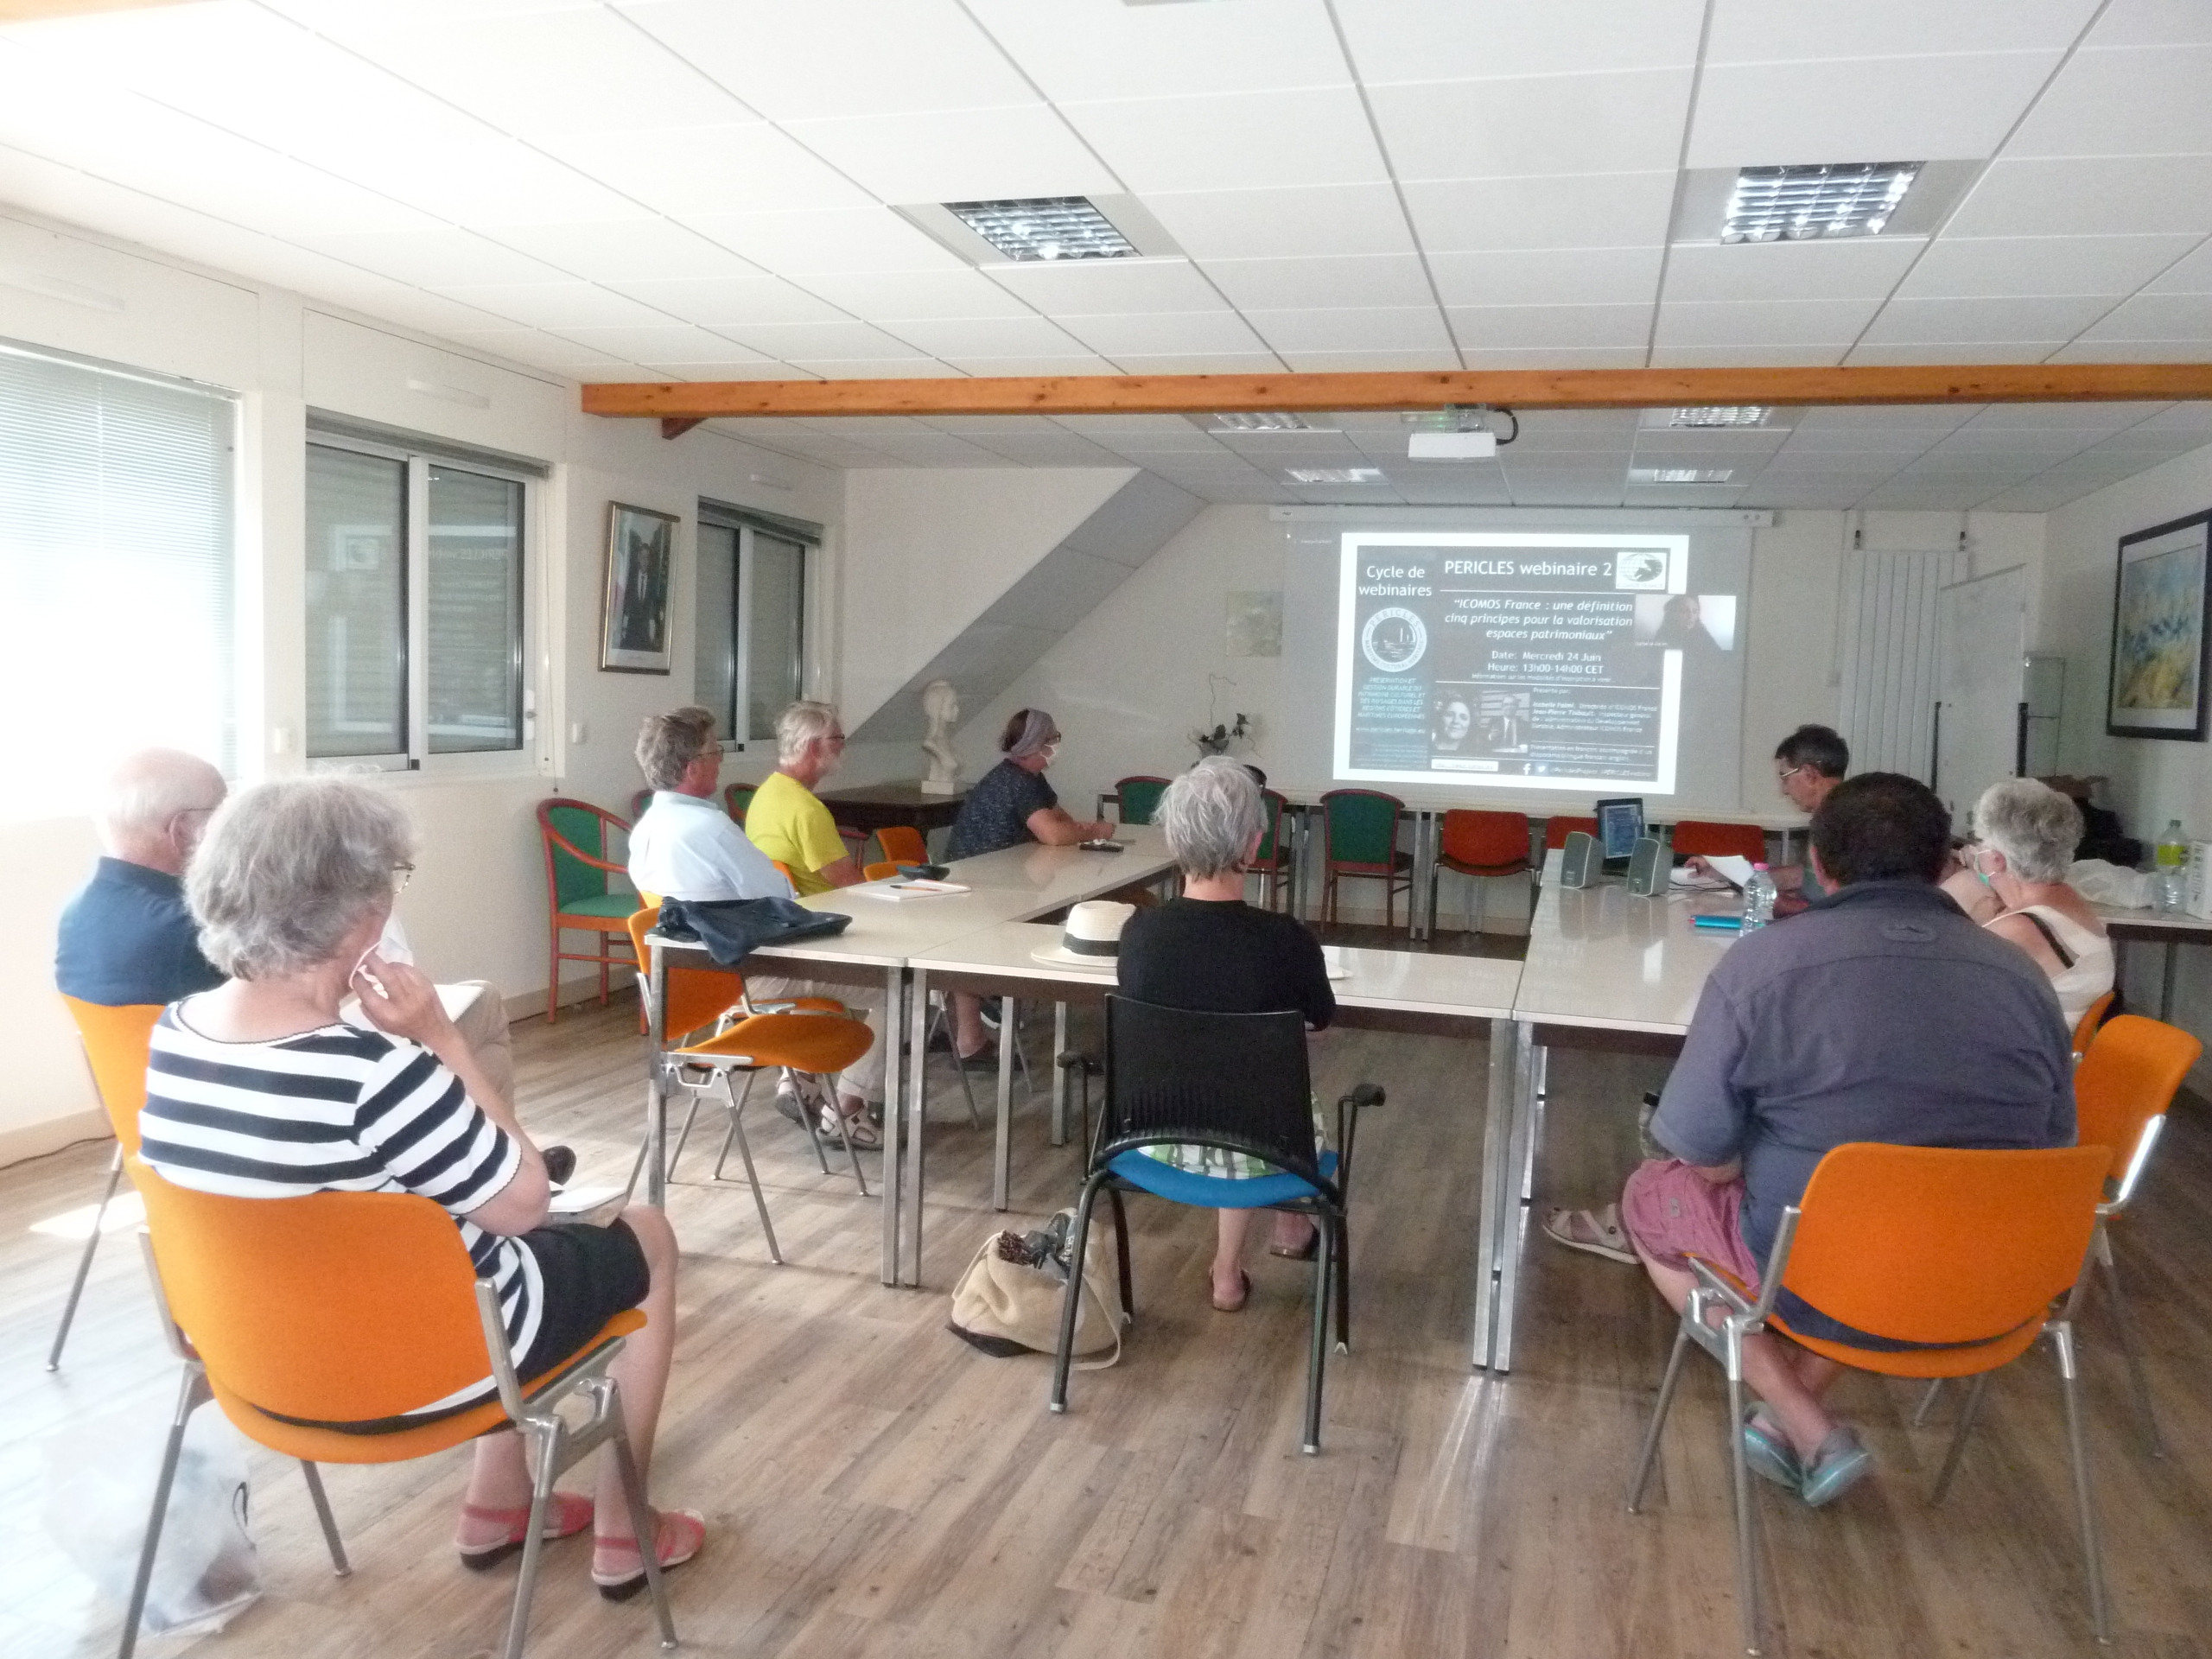 The ICOMOS France webinar watched collectively at the Locmariaquer town hall